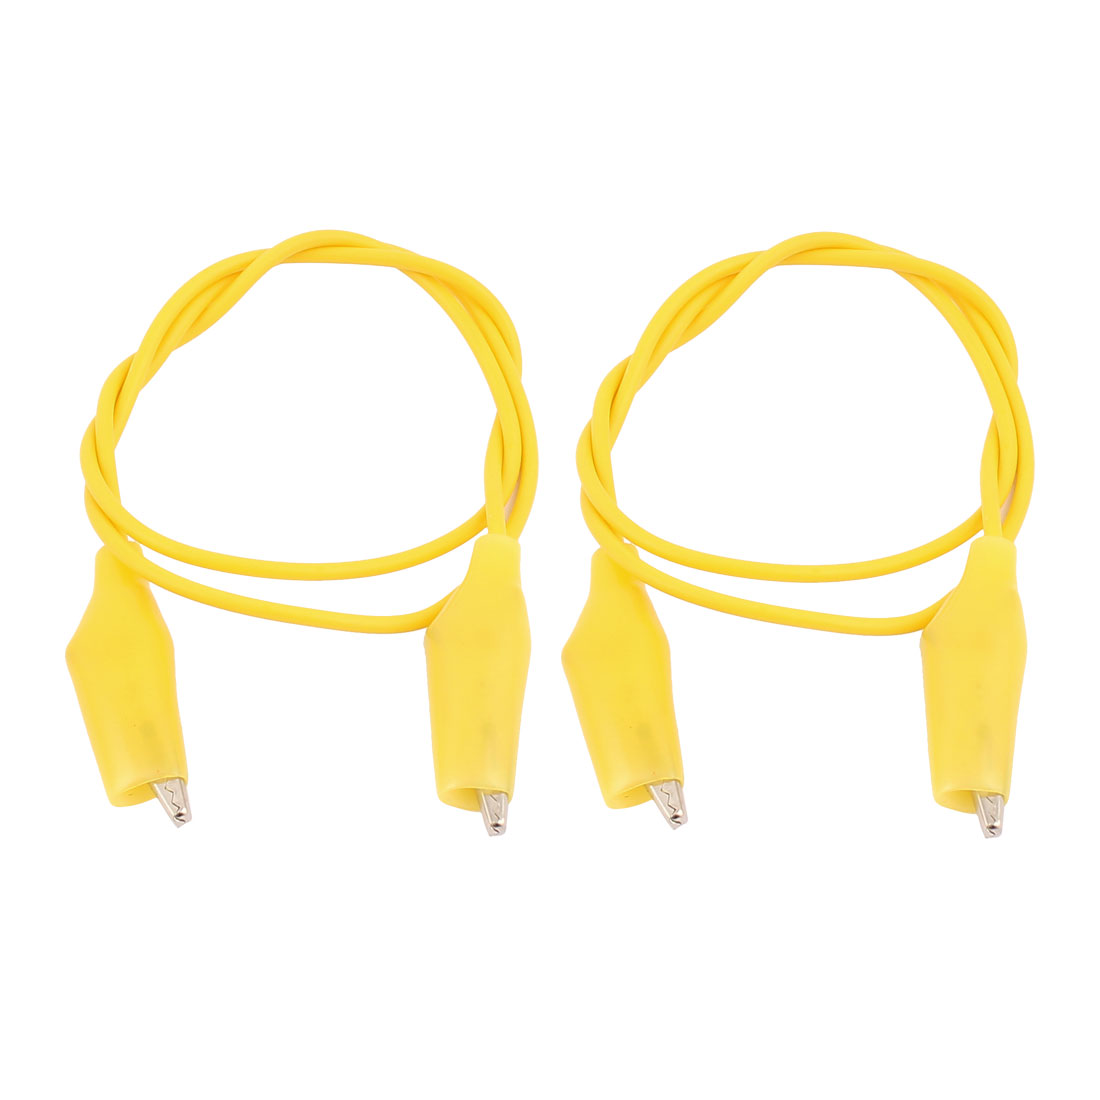 2pcs Yellow Double Ended Test Leads Alligator Crocodile Clip Clamp Jumper Wire 47cm Long